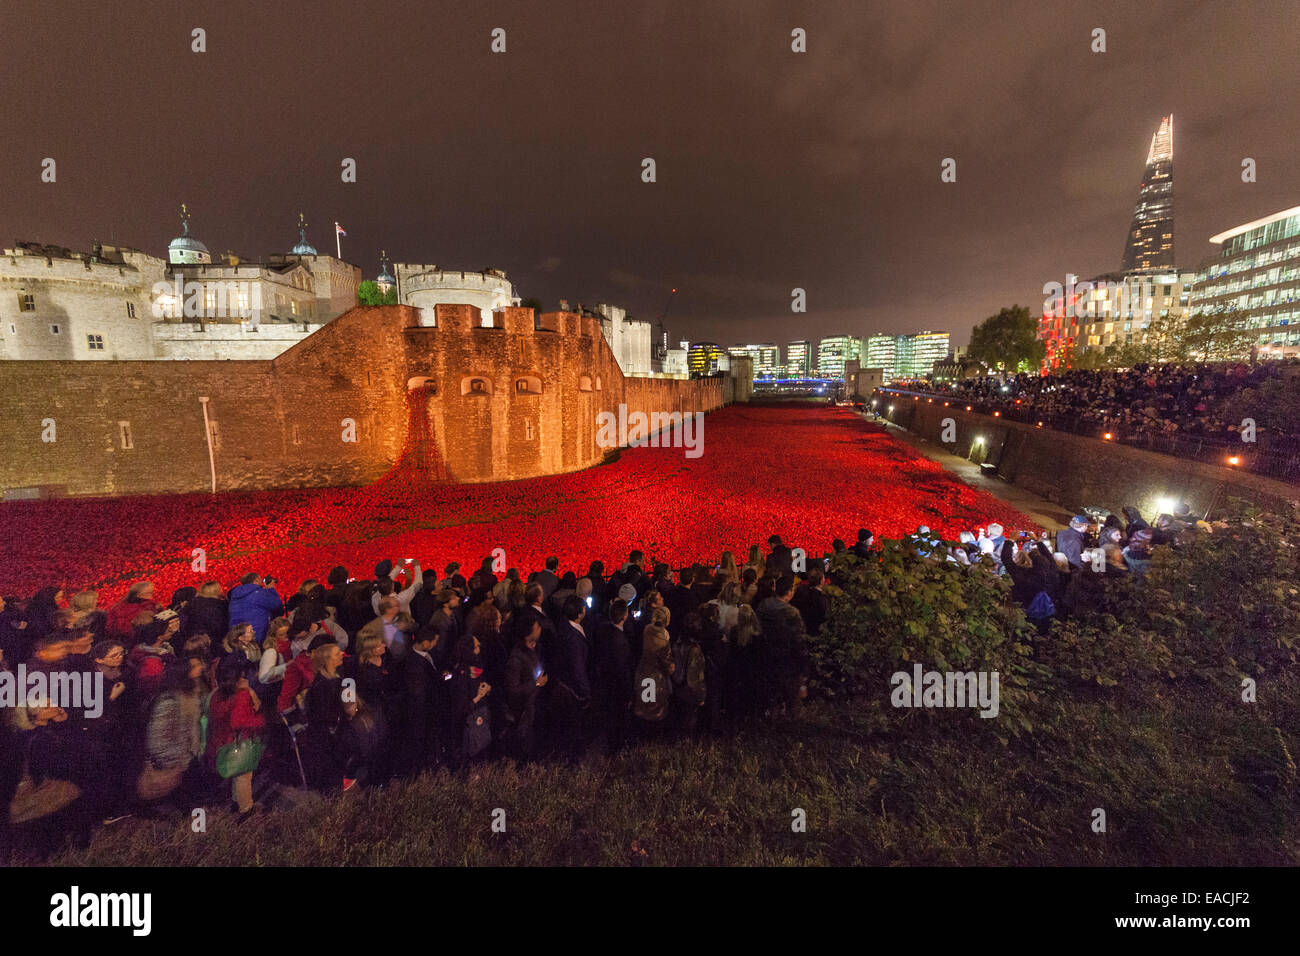 London, England, UK. 11 November 2014. Huge  crowds assemble at the Tower of London in the night of Armistice Day - Stock Image